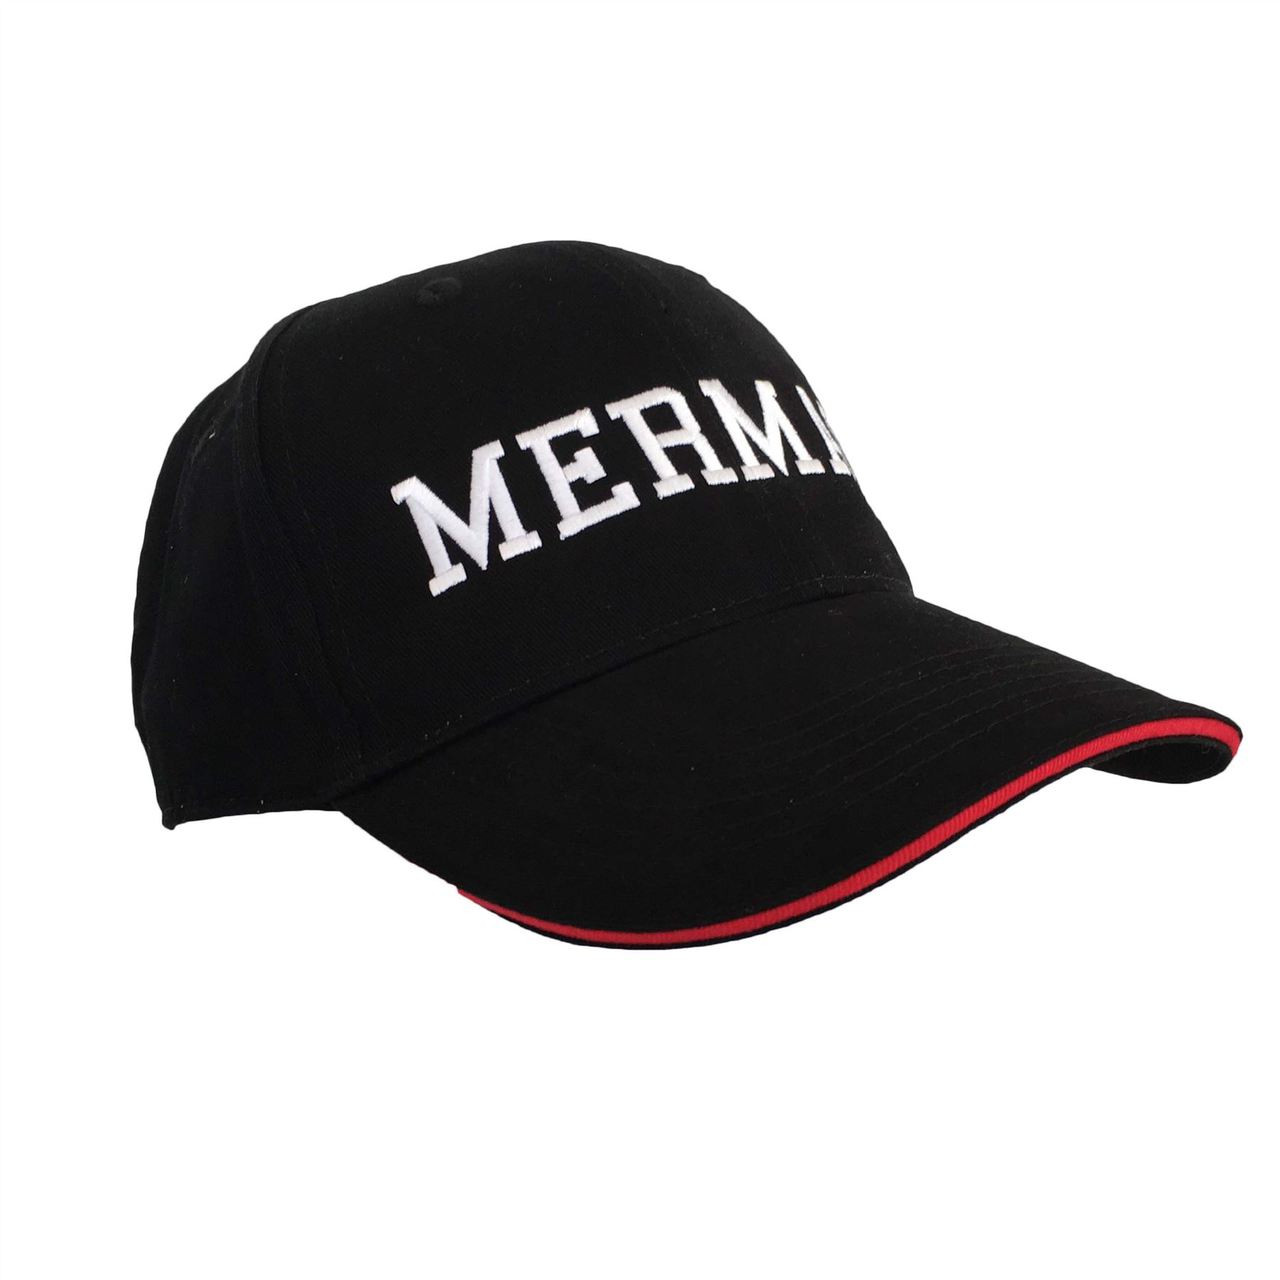 Twisted Mermaid Sports Cap